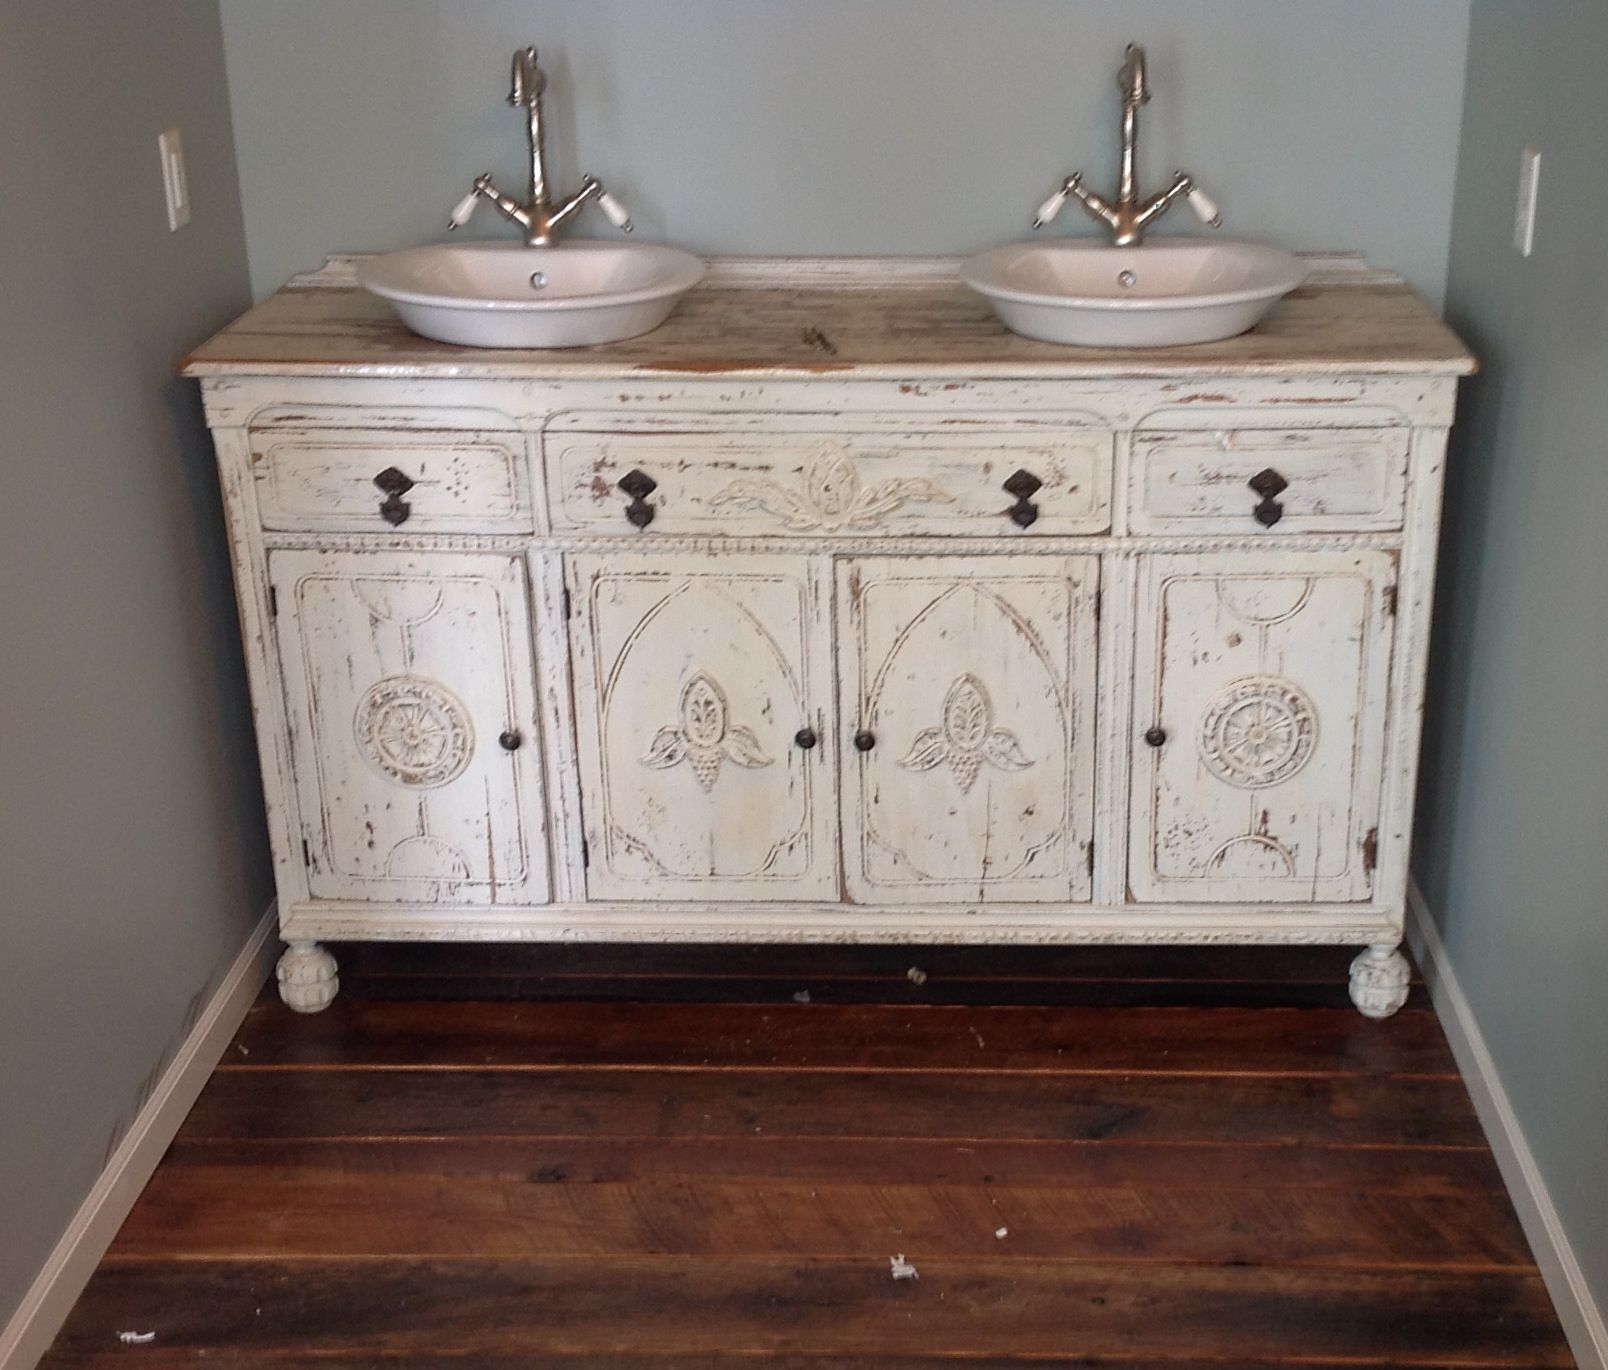 Bathroom Cabinets Shabby Chic painted shabby chic repurposed bathroom sink vanity. repurposed